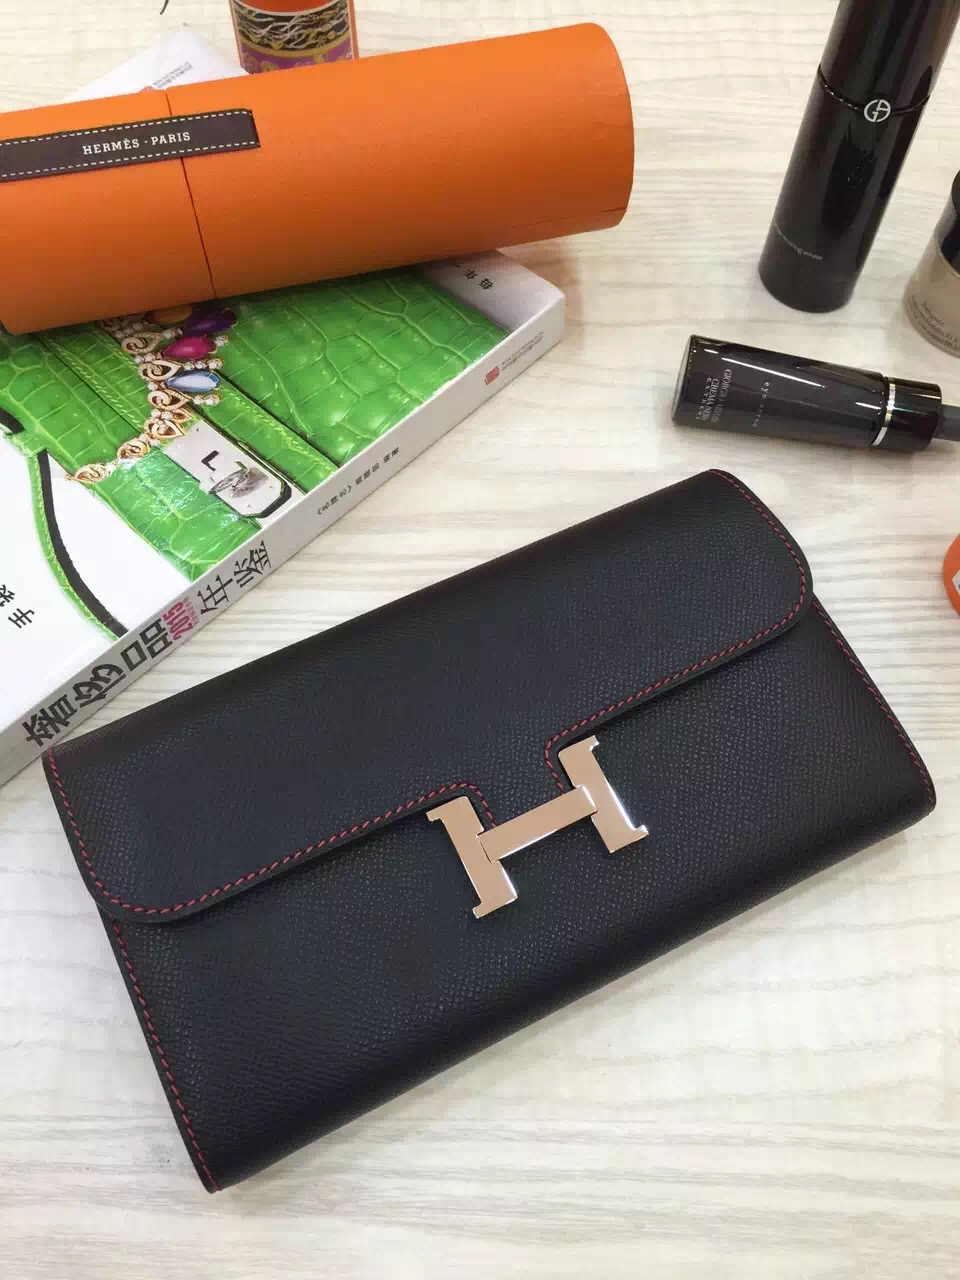 Luxury Hermes Black Epsom Leather Constance Wallet Long Purse 21CM